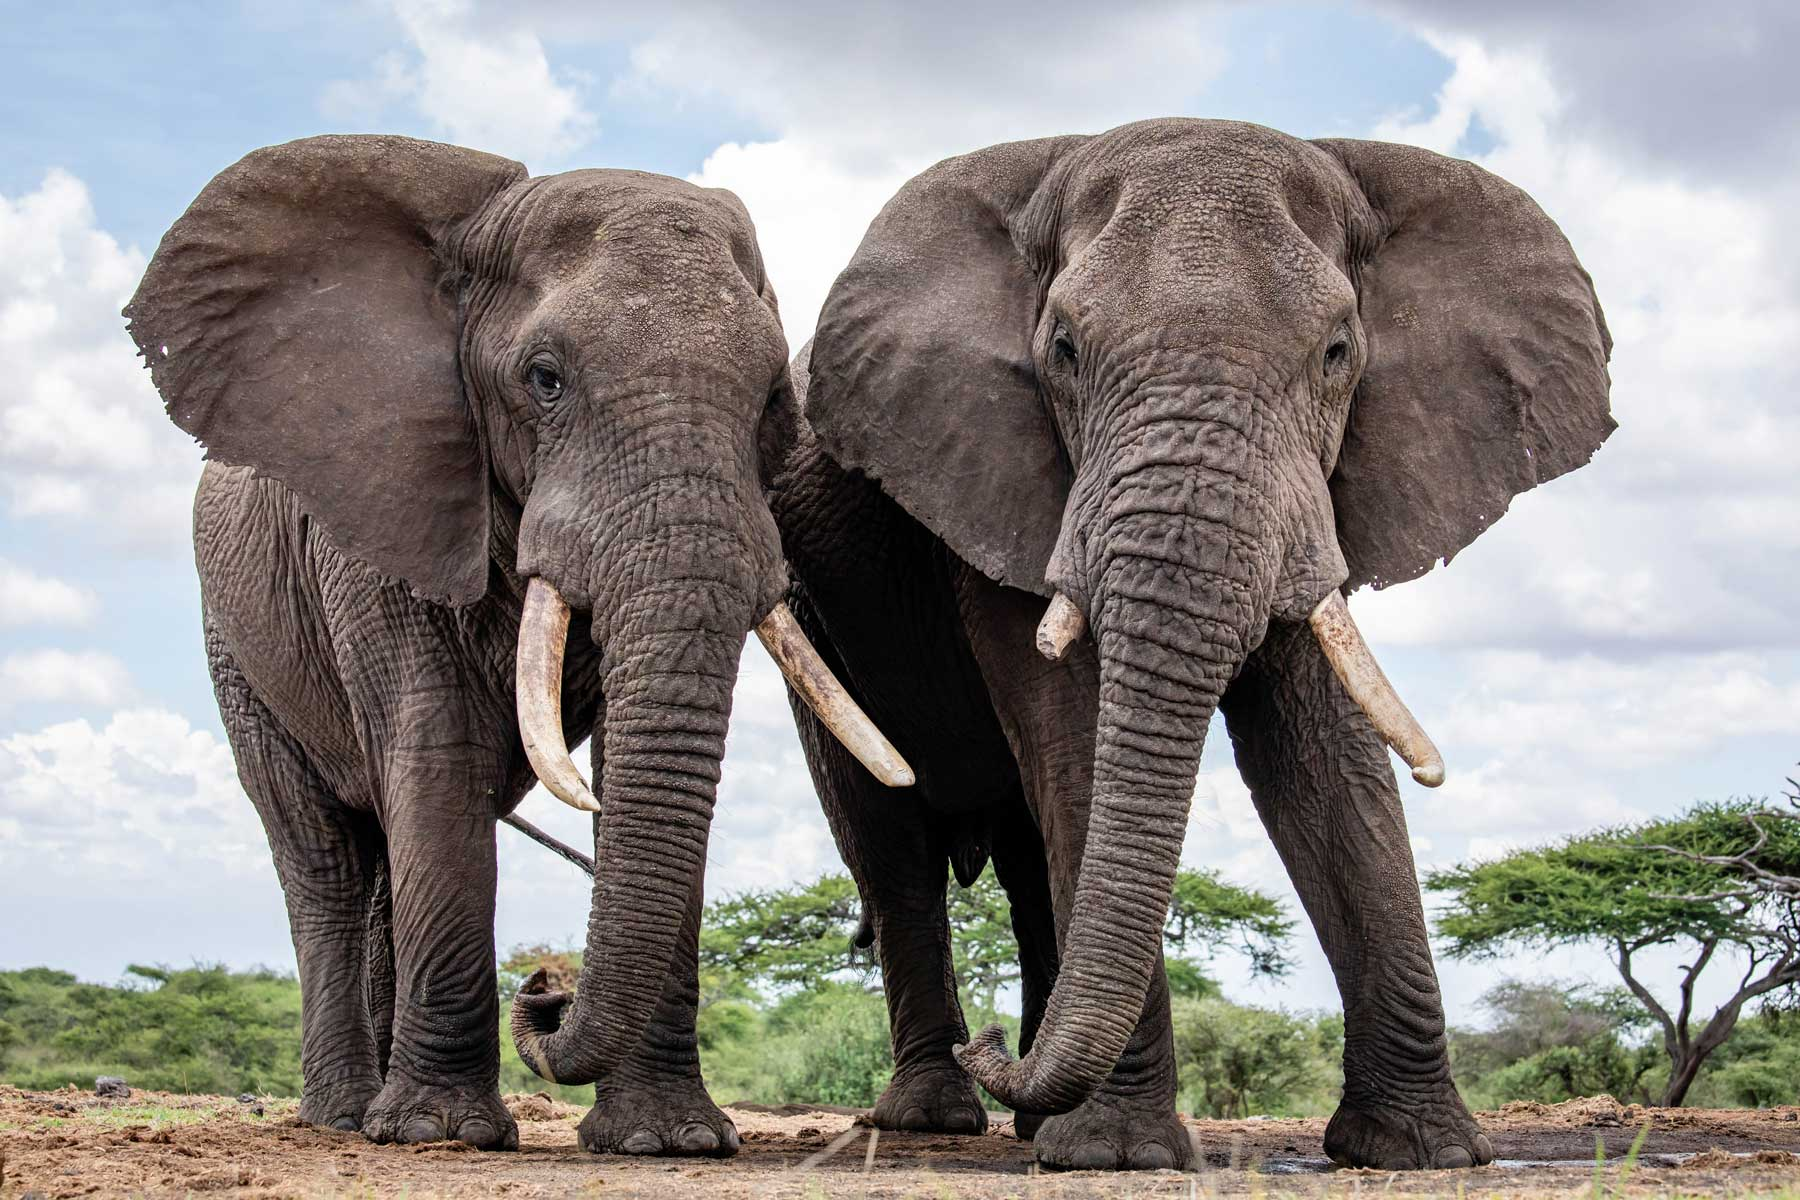 Two bull elephants at Ol Donyo lodge in the foothills of the Chyulu Hills, bordering the Chyulu Hills National Park in the east of the Amboseli ecosystem, Kenya